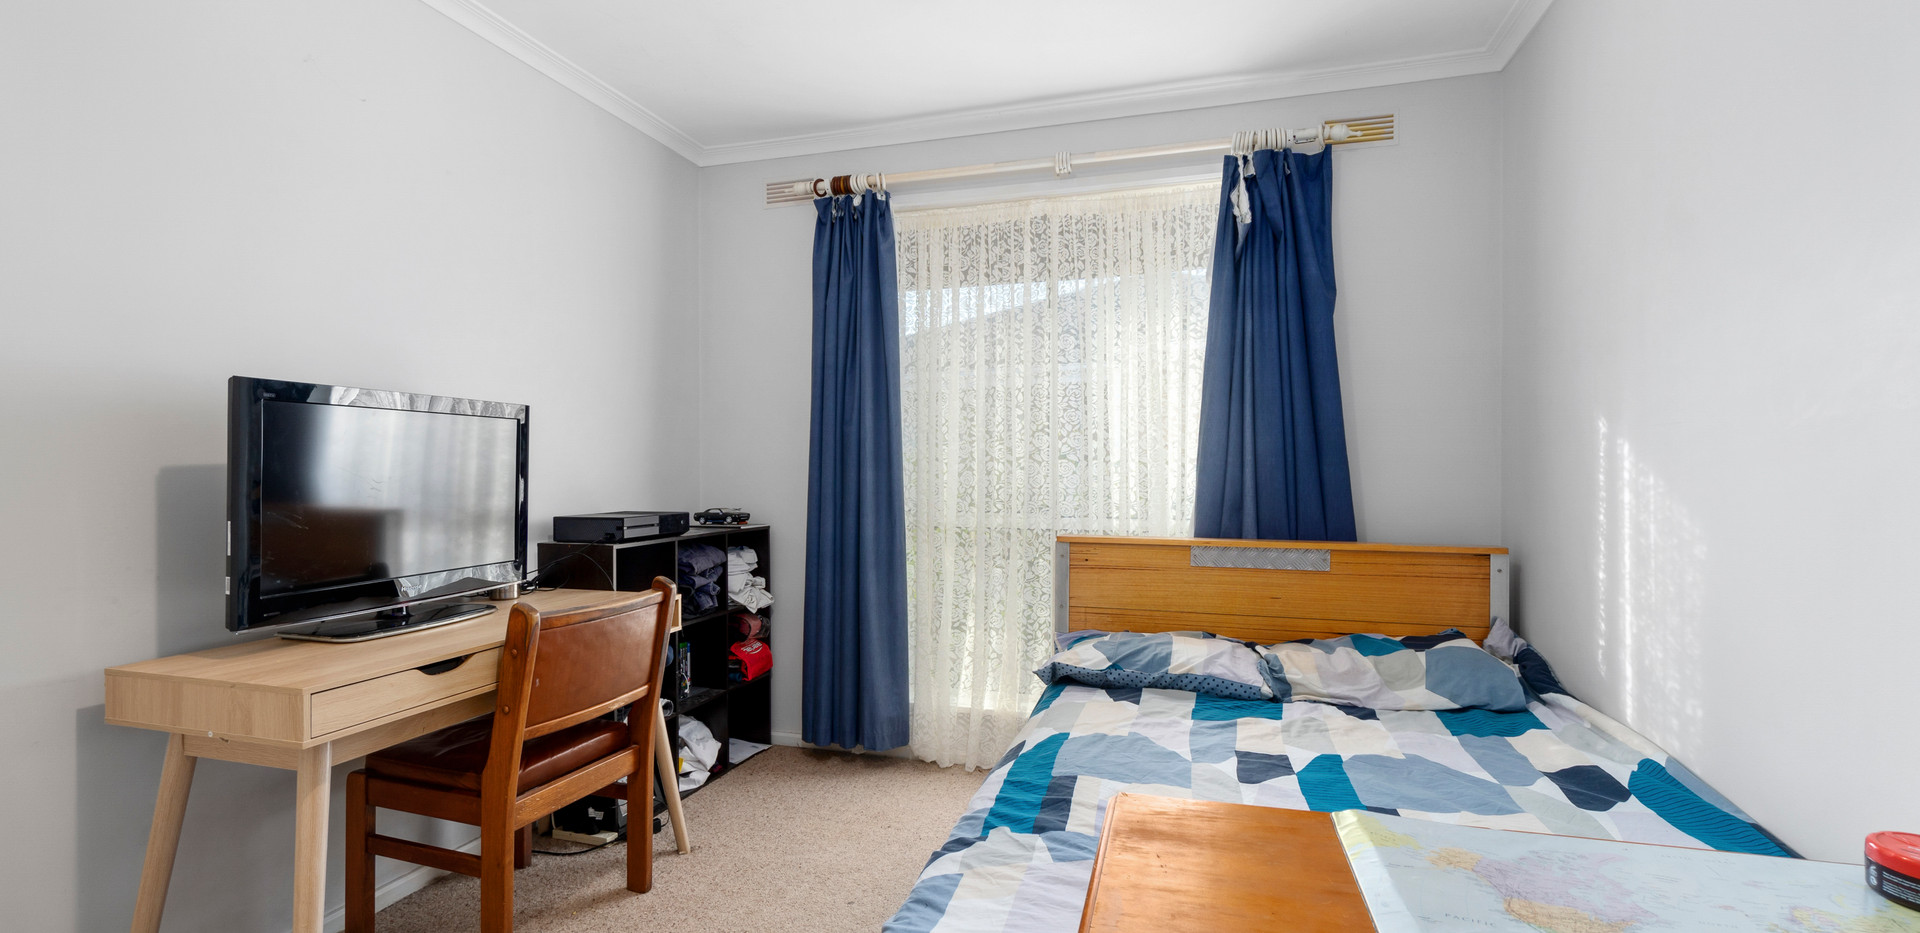 009_Open2view_ID649114-41_Valentine_Cres